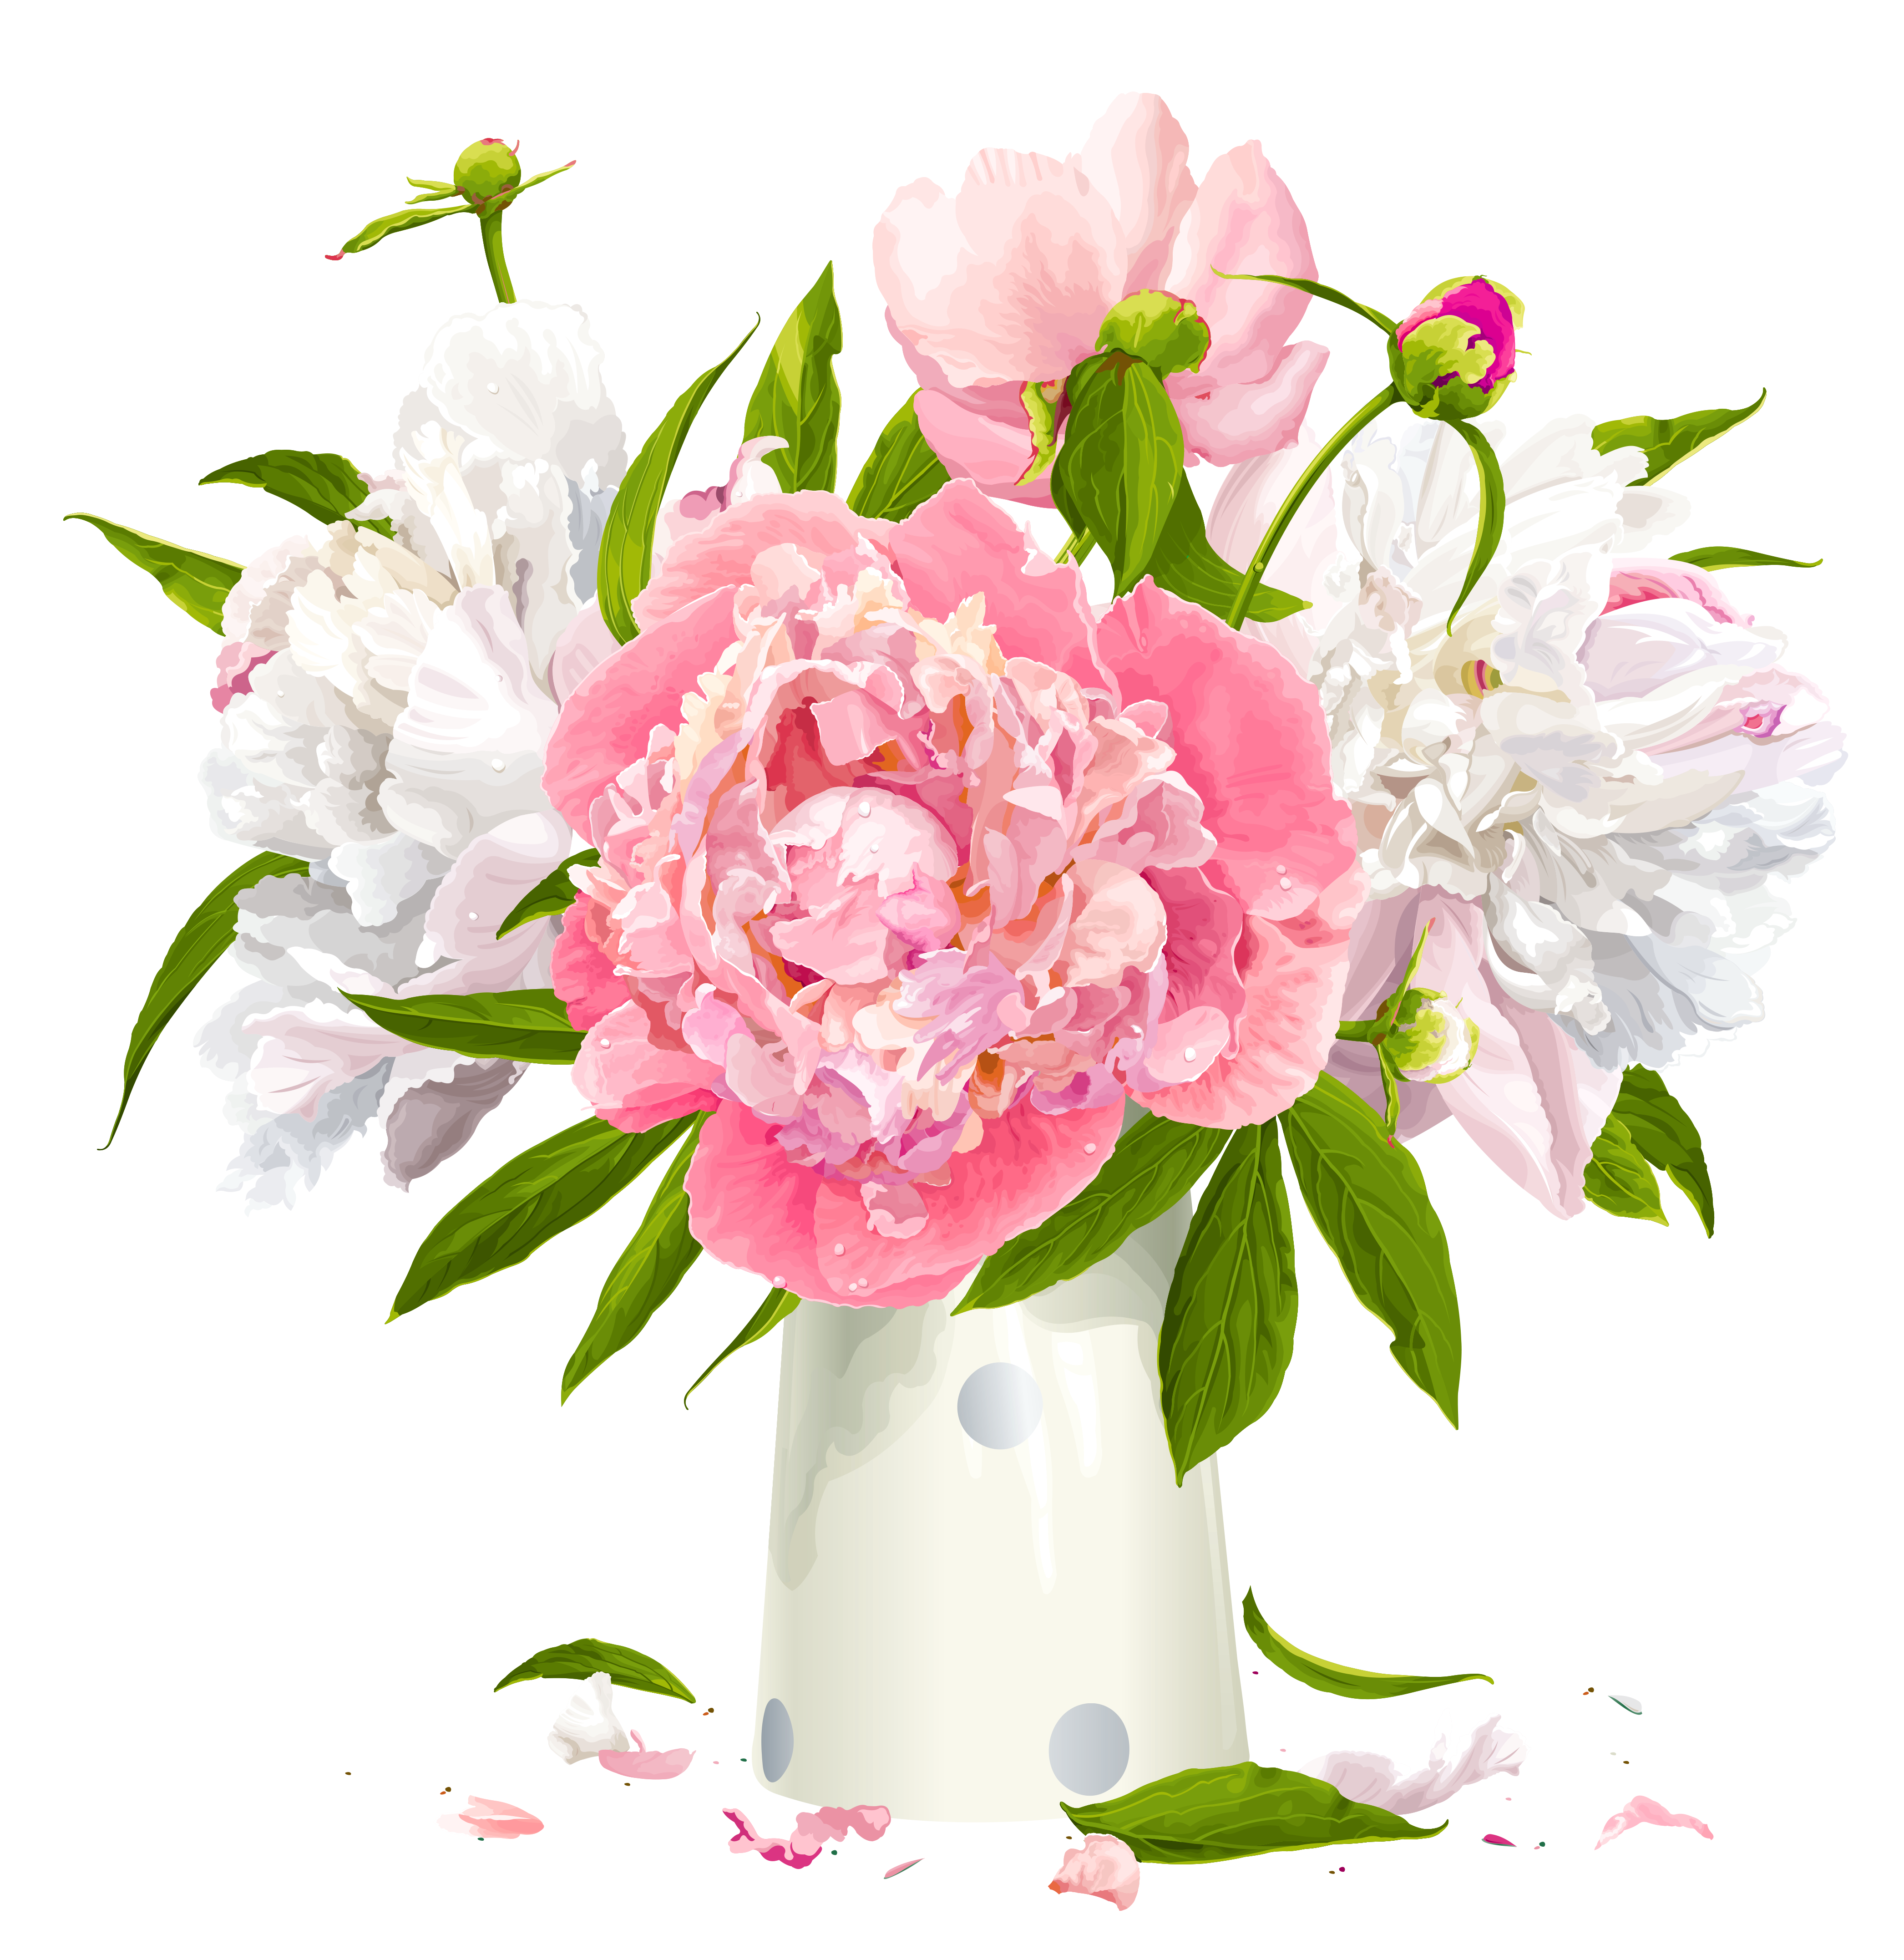 Vase with white and. Peonies clipart